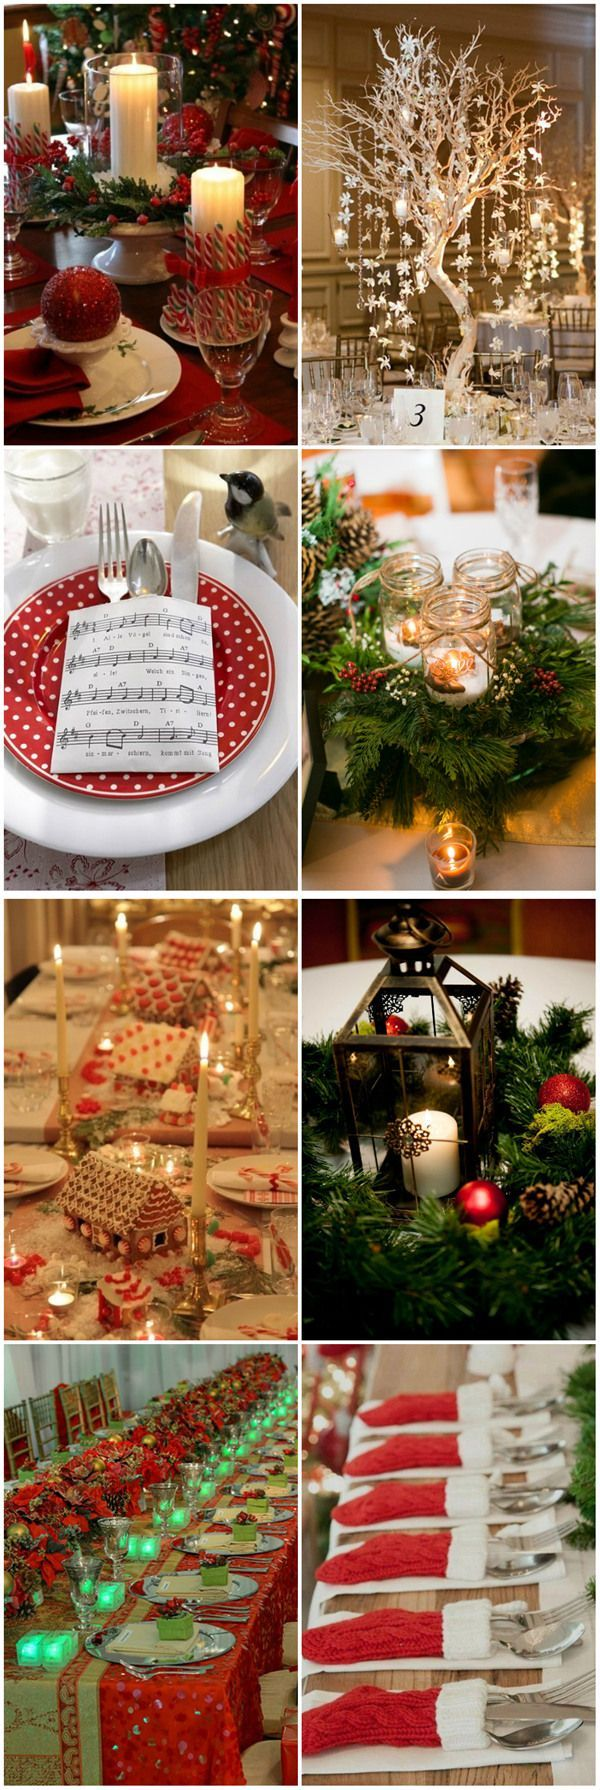 Christmas inspired wedding centerpiece ideas